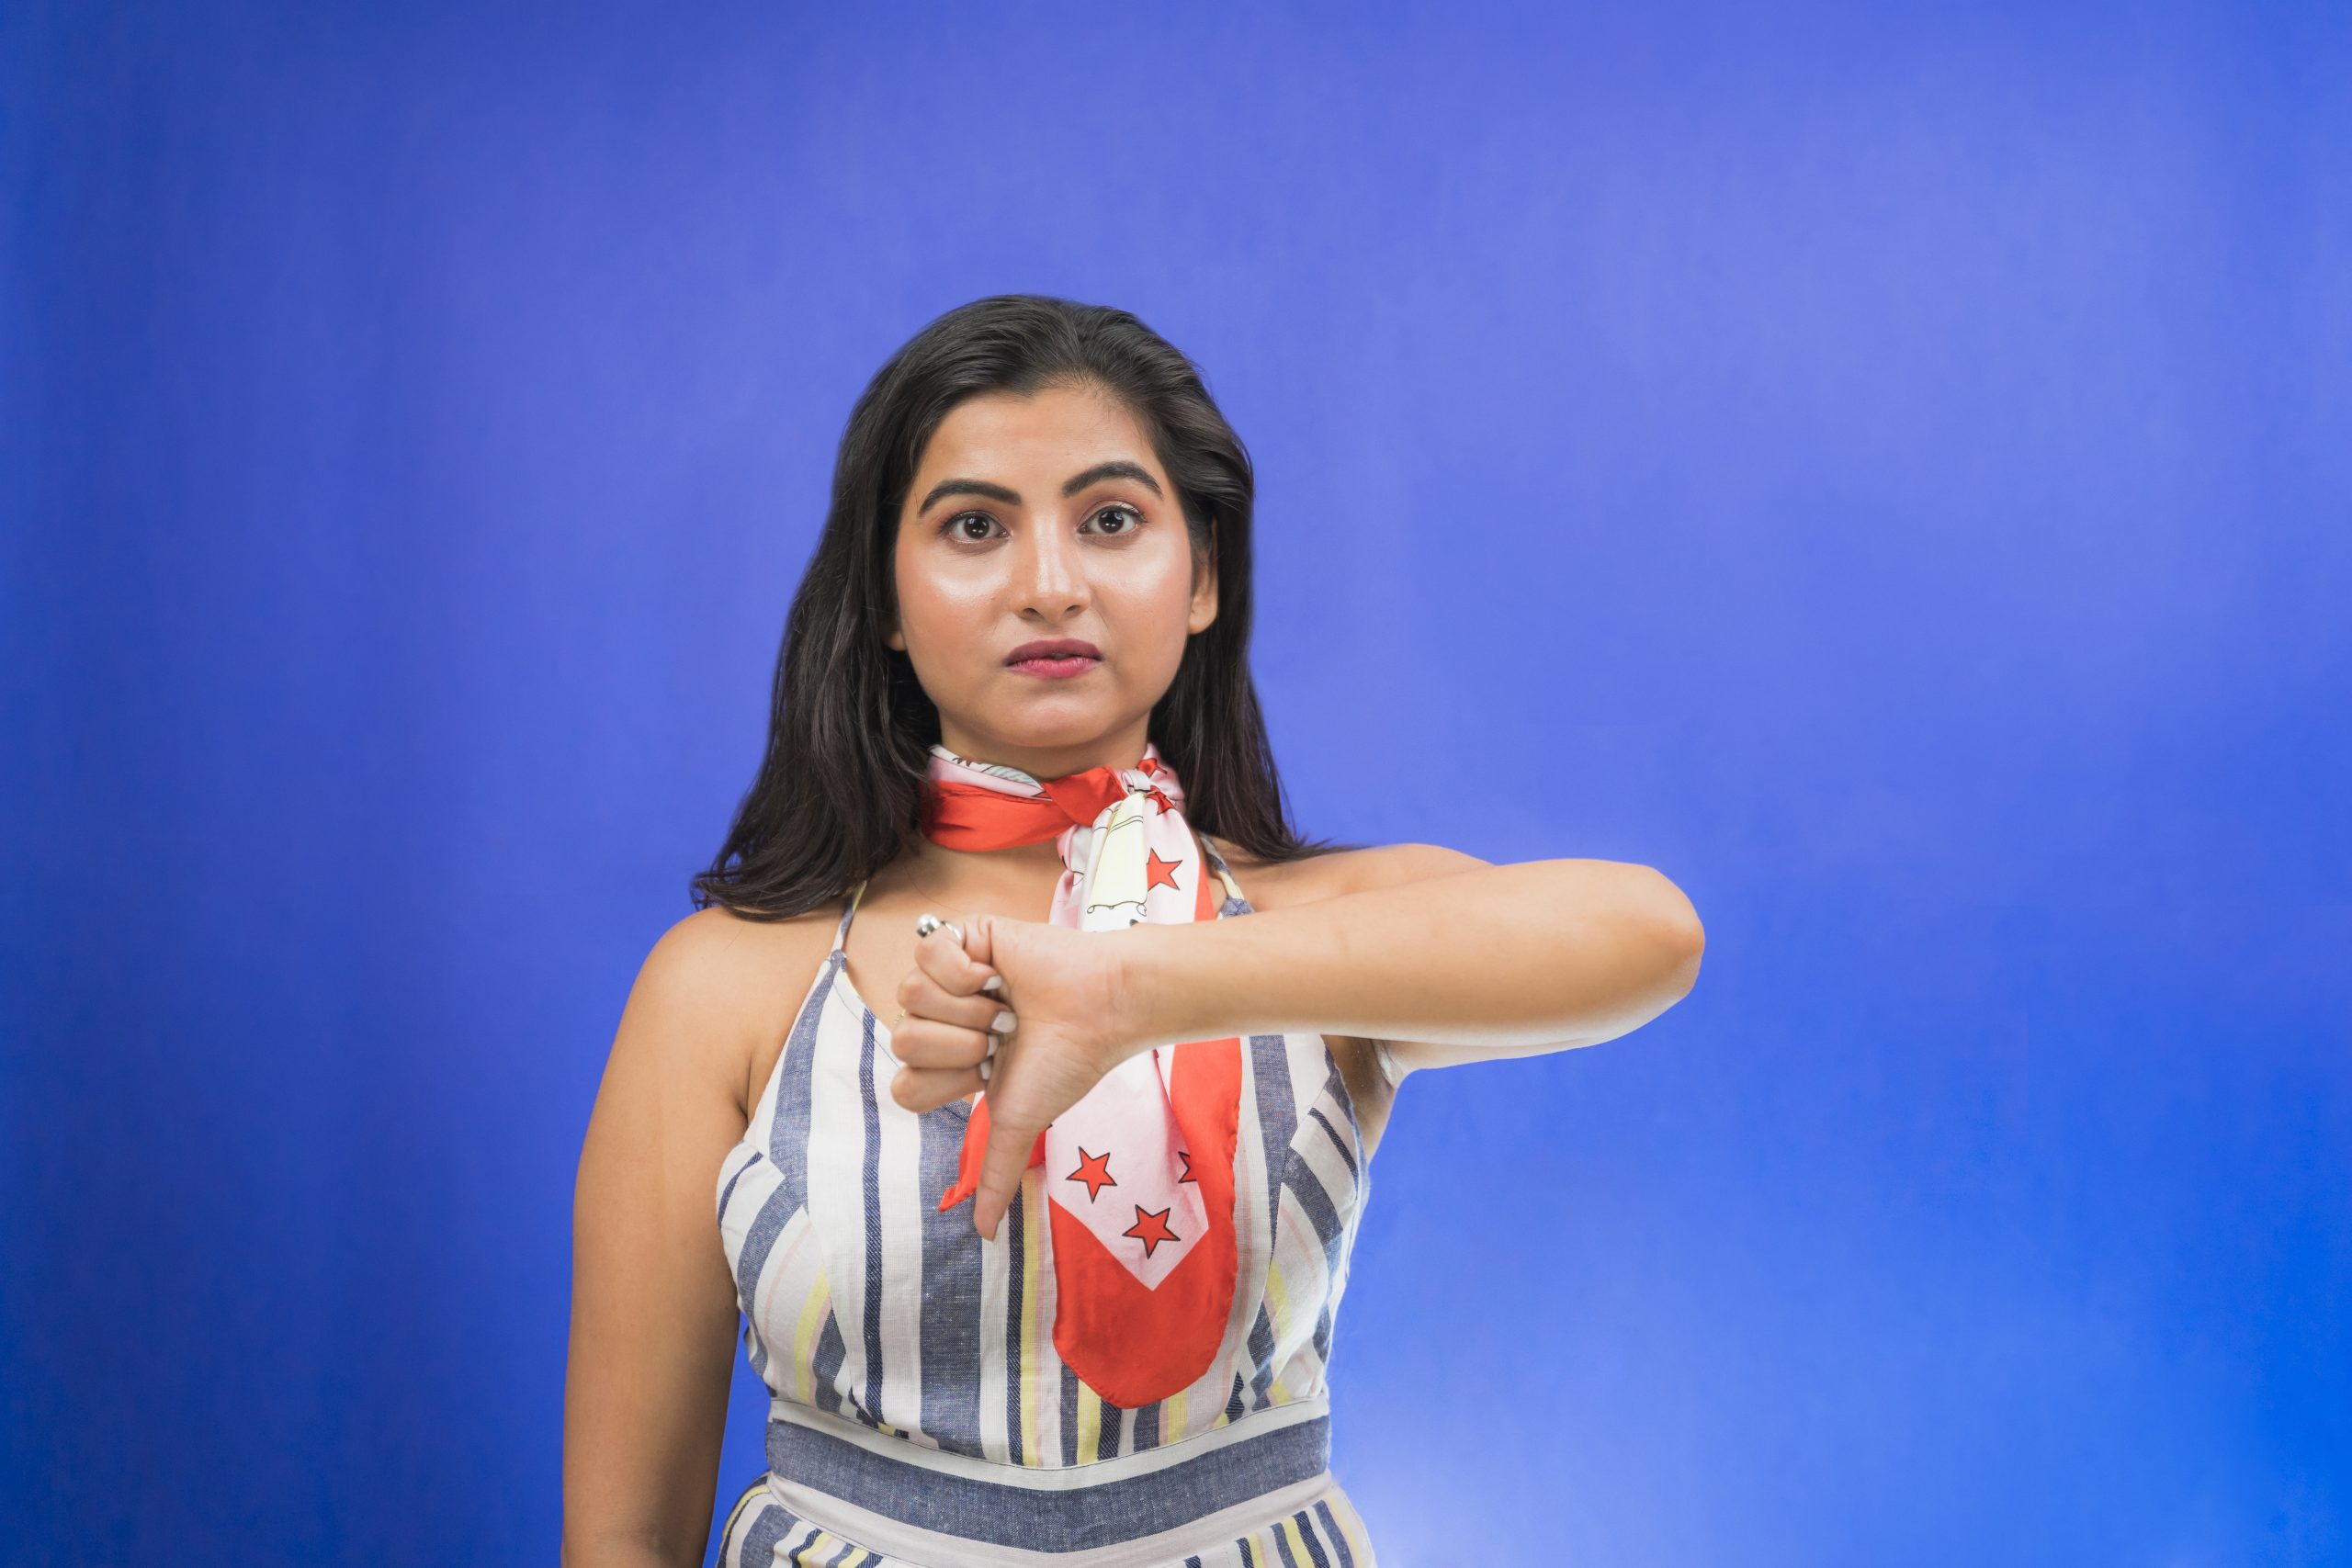 Unhappy indian girl doing thumbs down